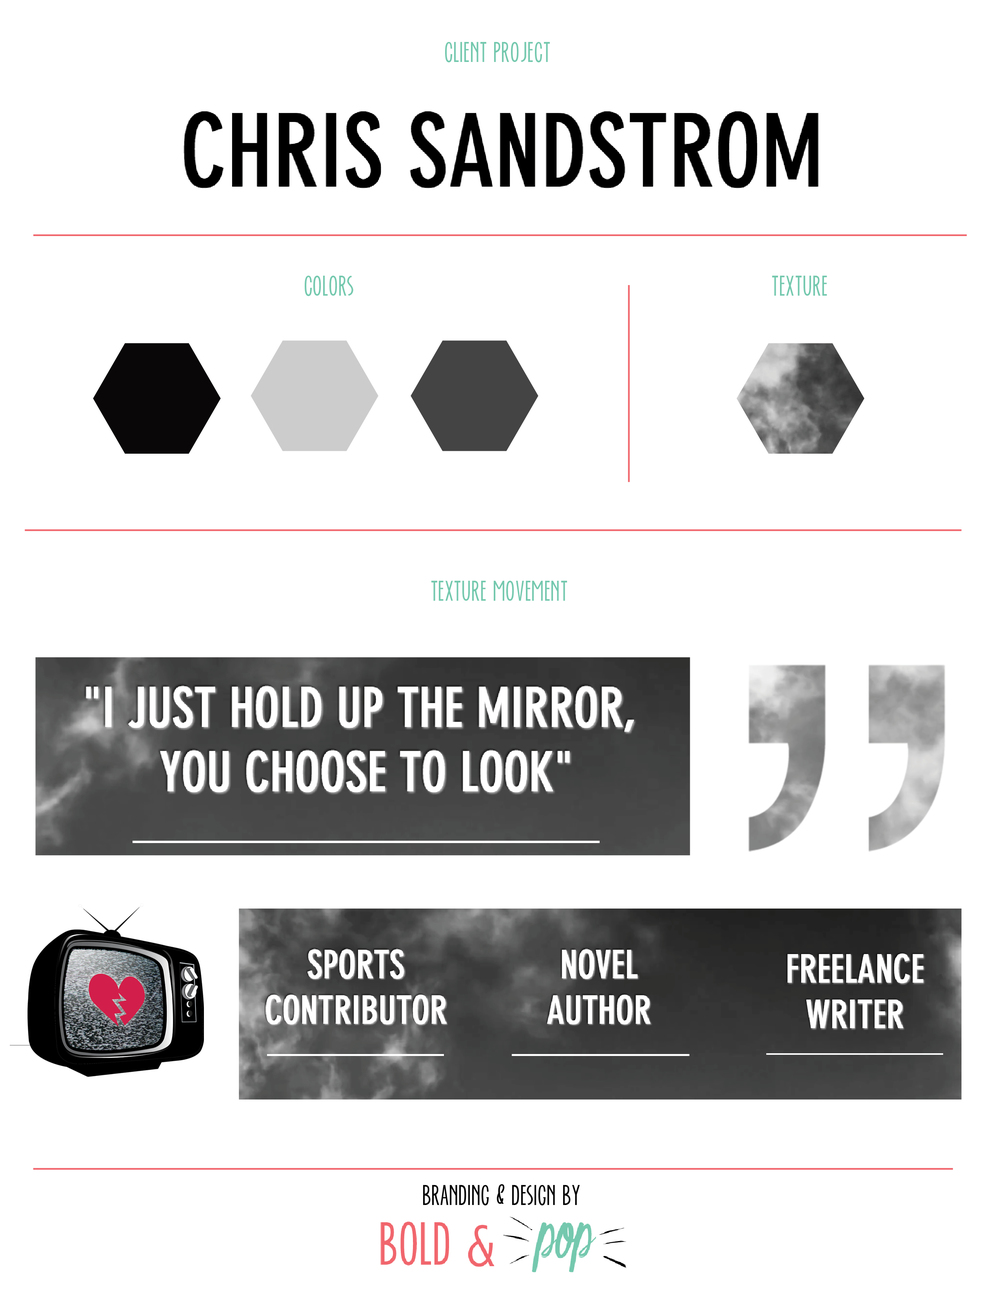 Bold & Pop : Chris Sandstrom Website Refresh